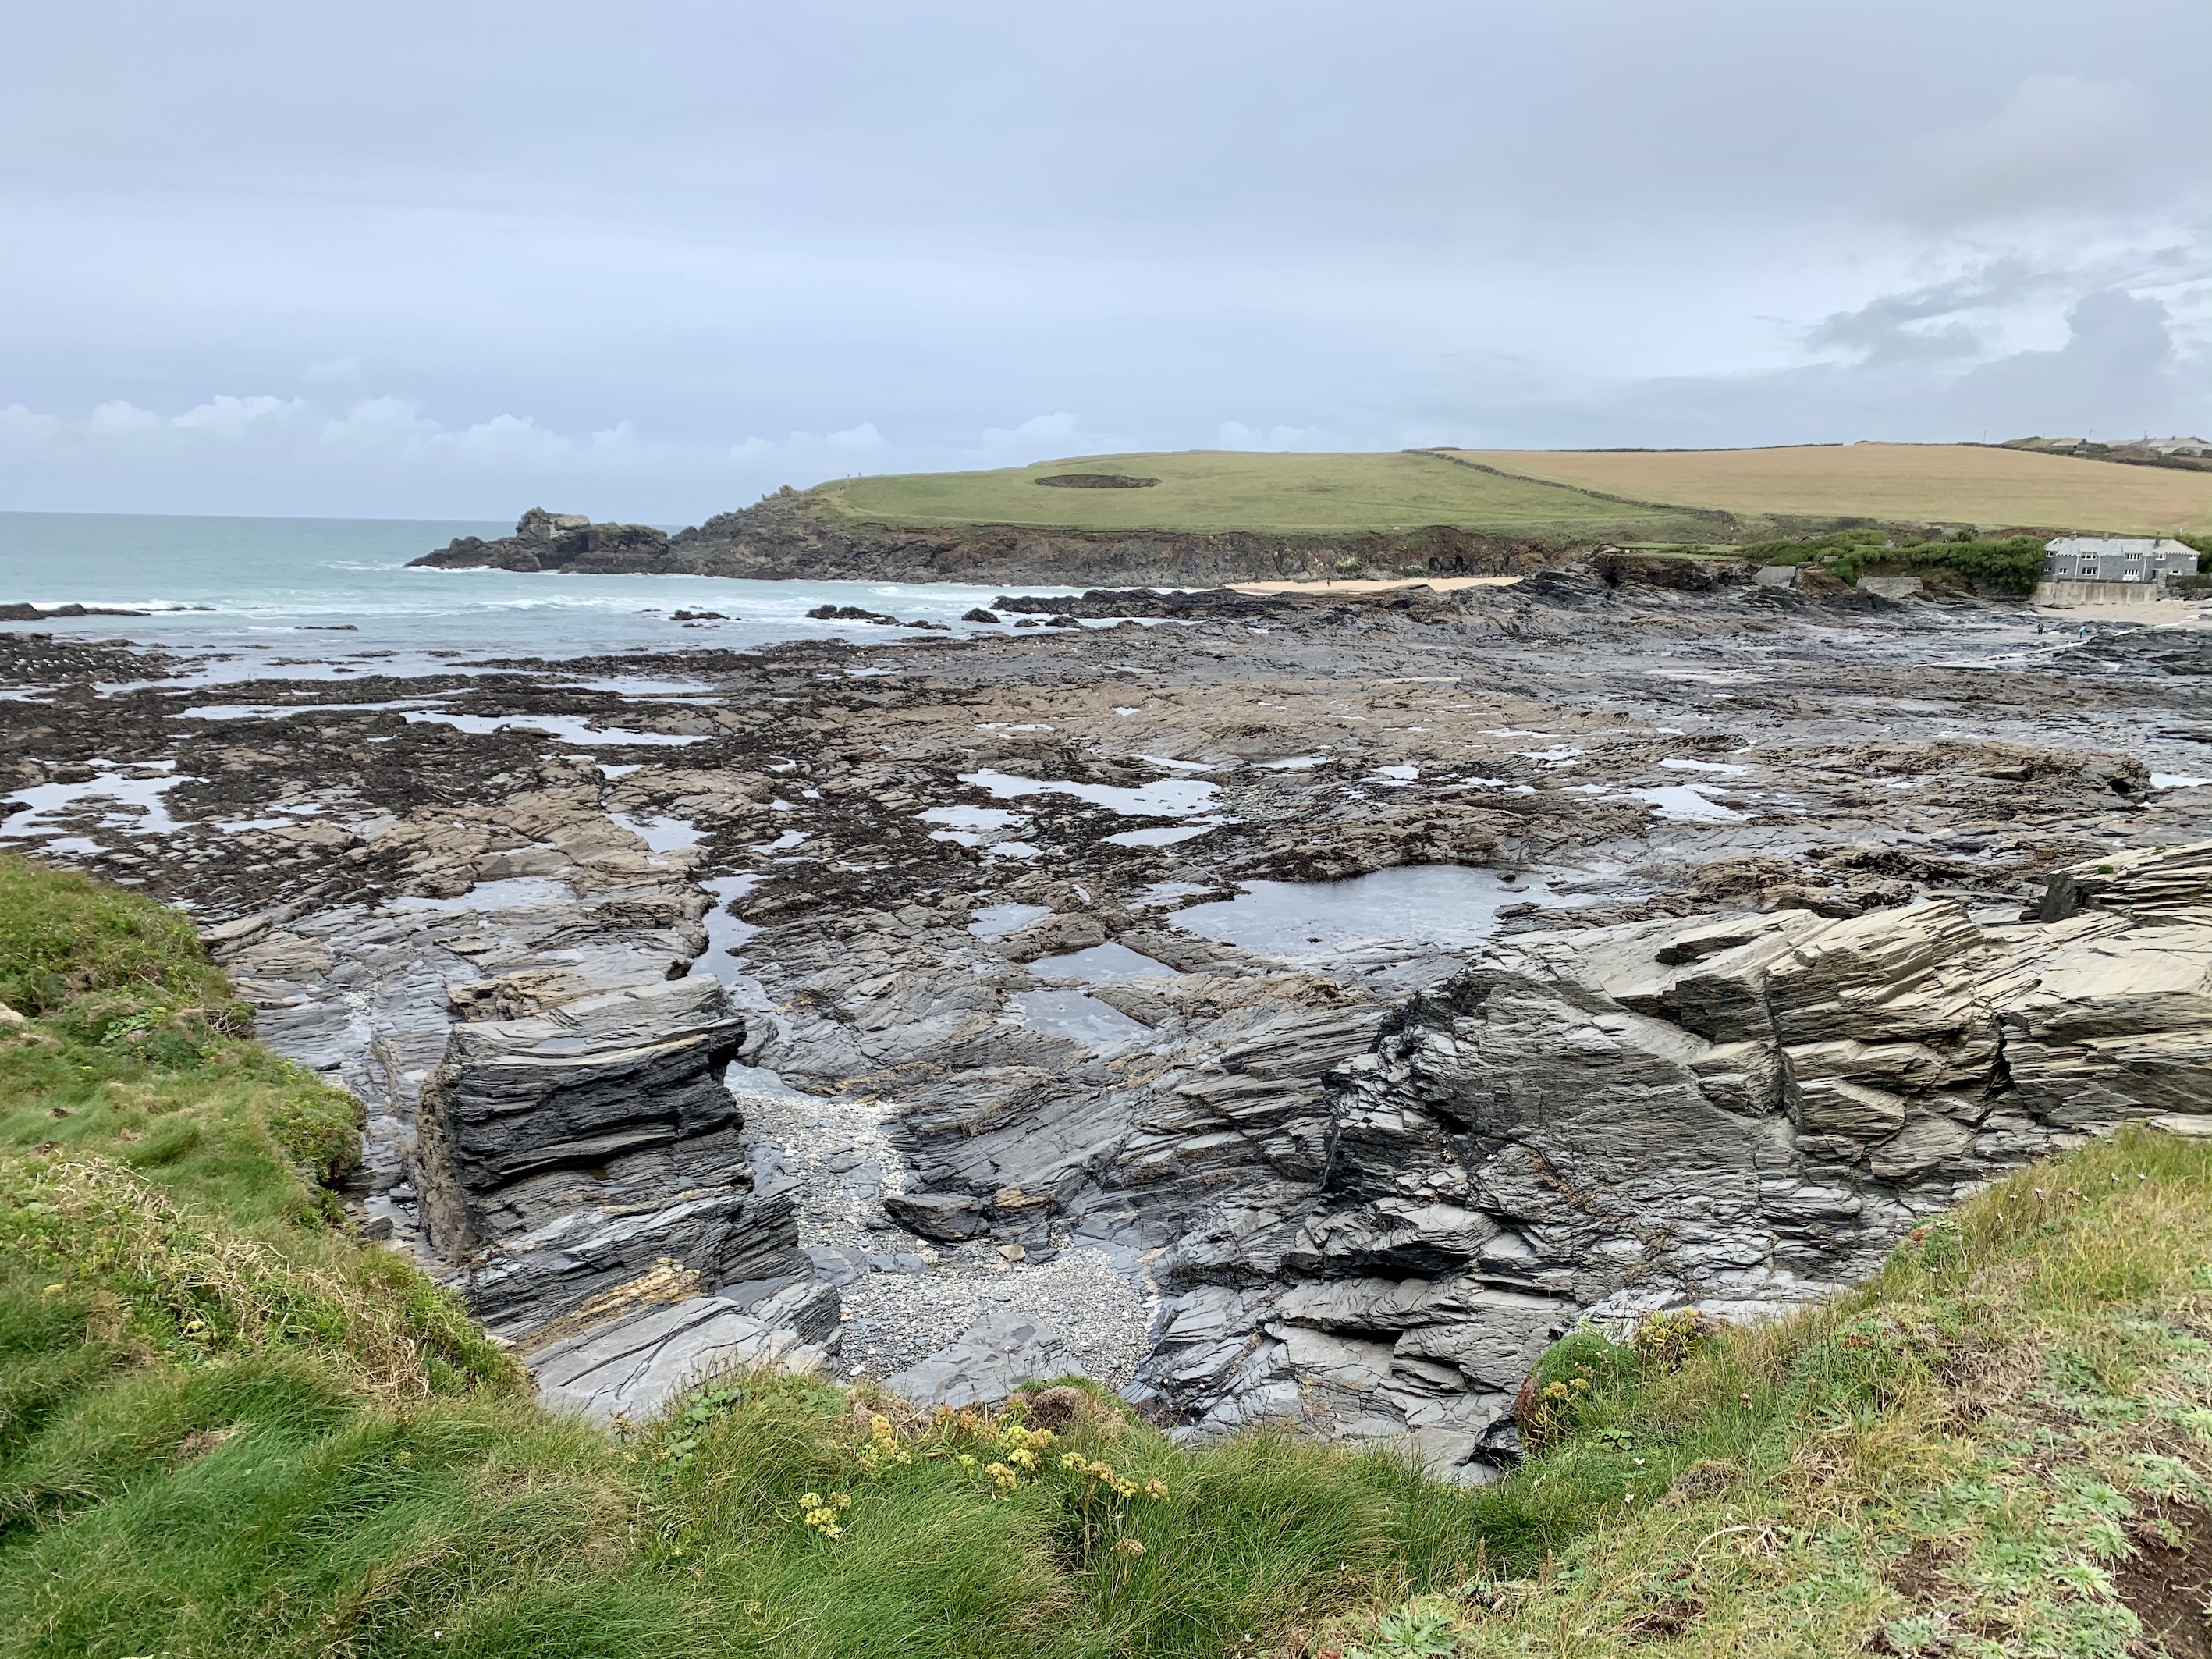 Rock formations near Trevone Bay whilst walking The South West Coast path from Padstow to Porthcothan